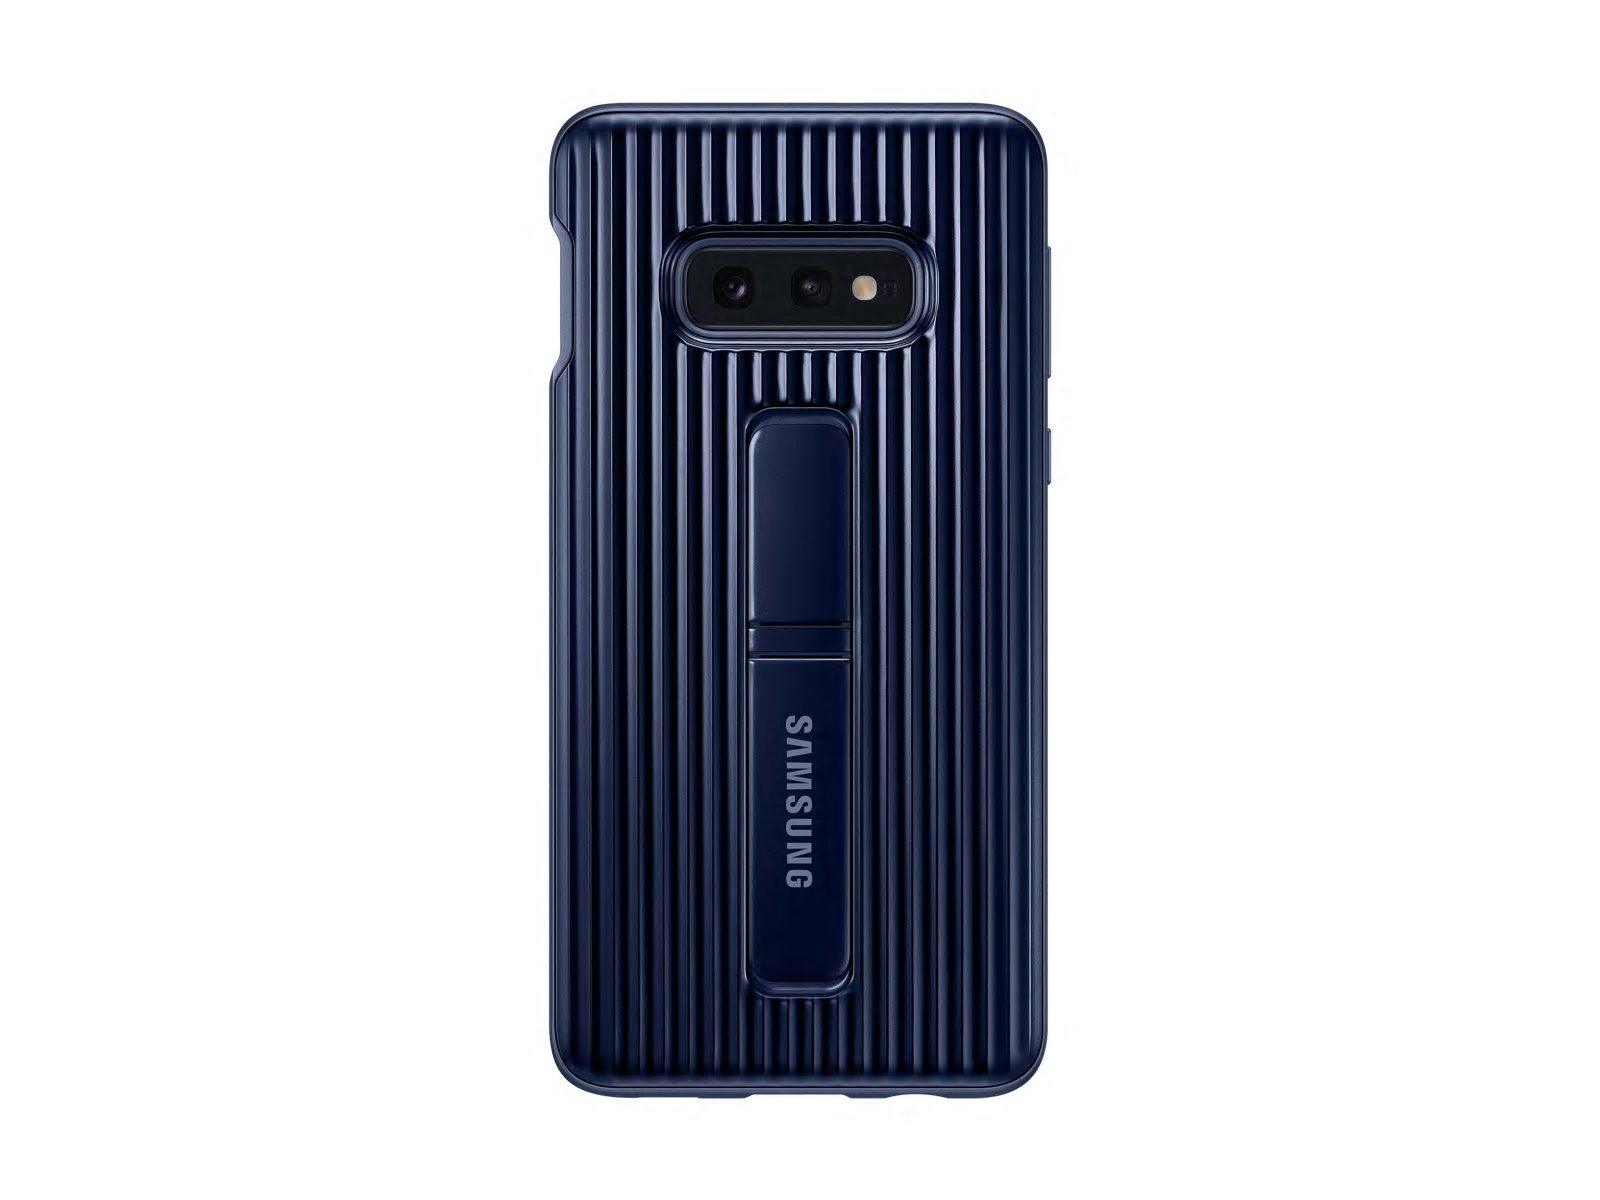 EF-RG970CLE Samsung Standing Cover Blue pro G970 Galaxy S10e 8801643641733